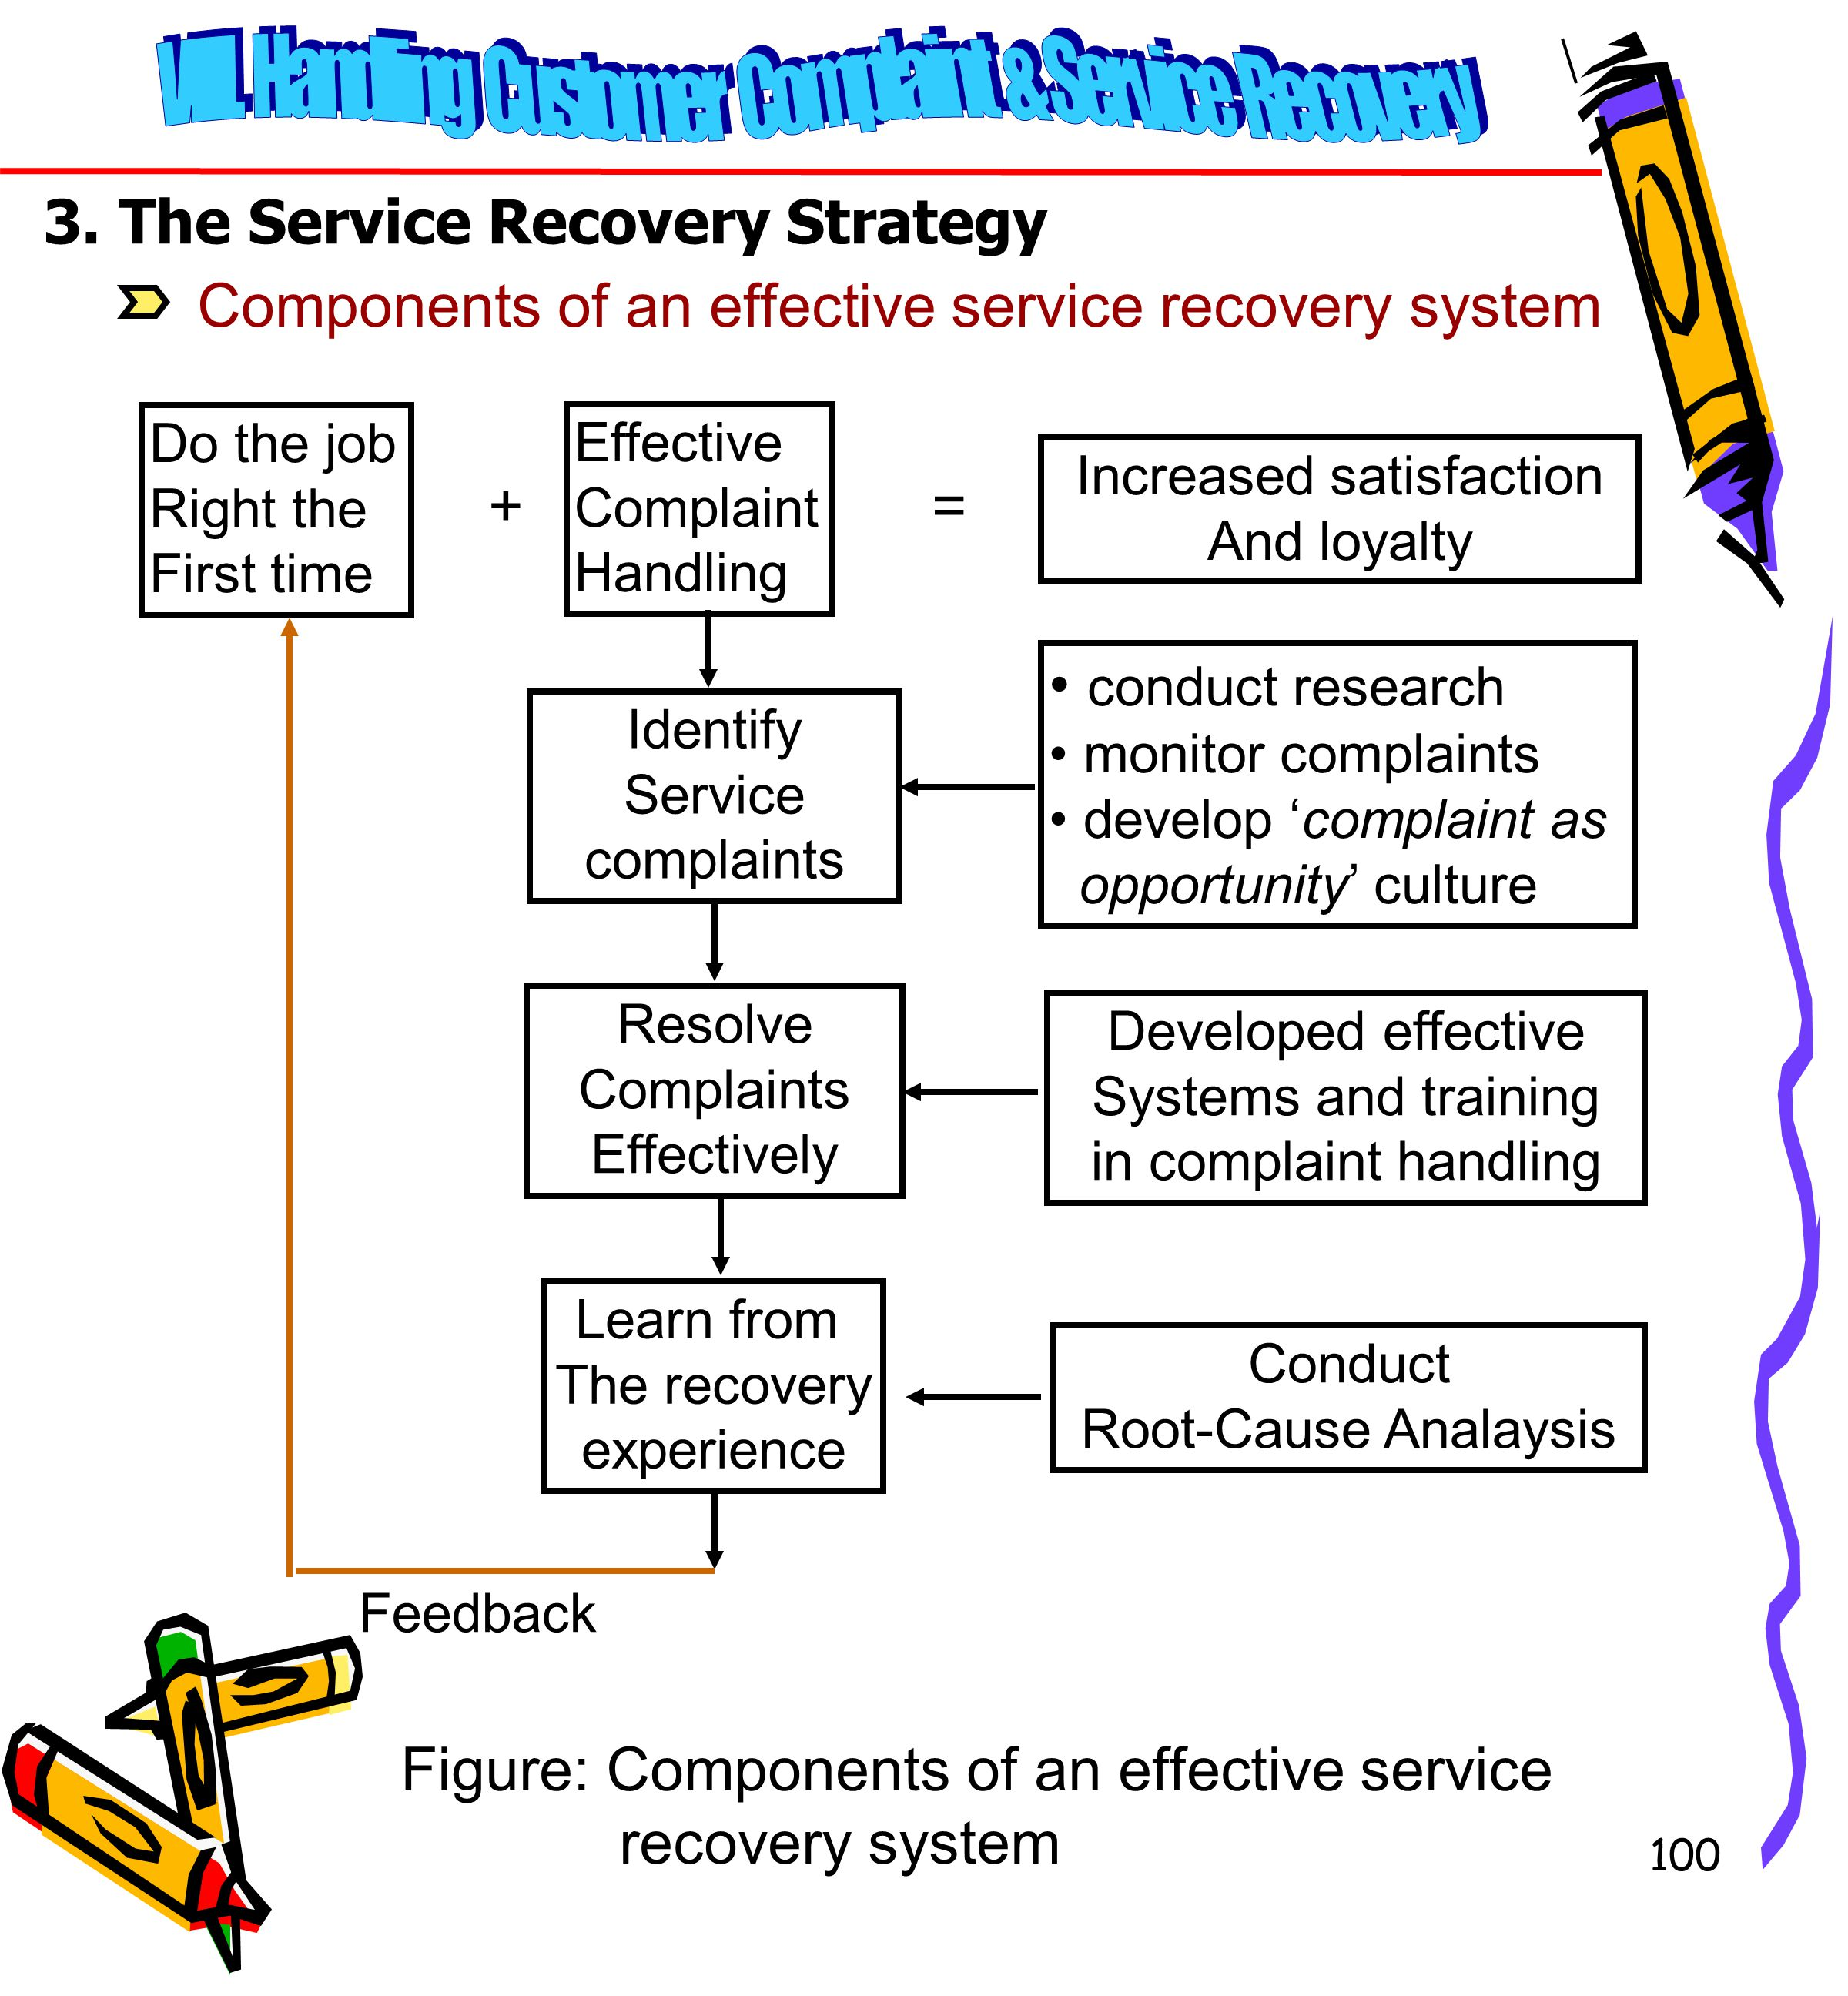 3. The Service Recovery Strategy